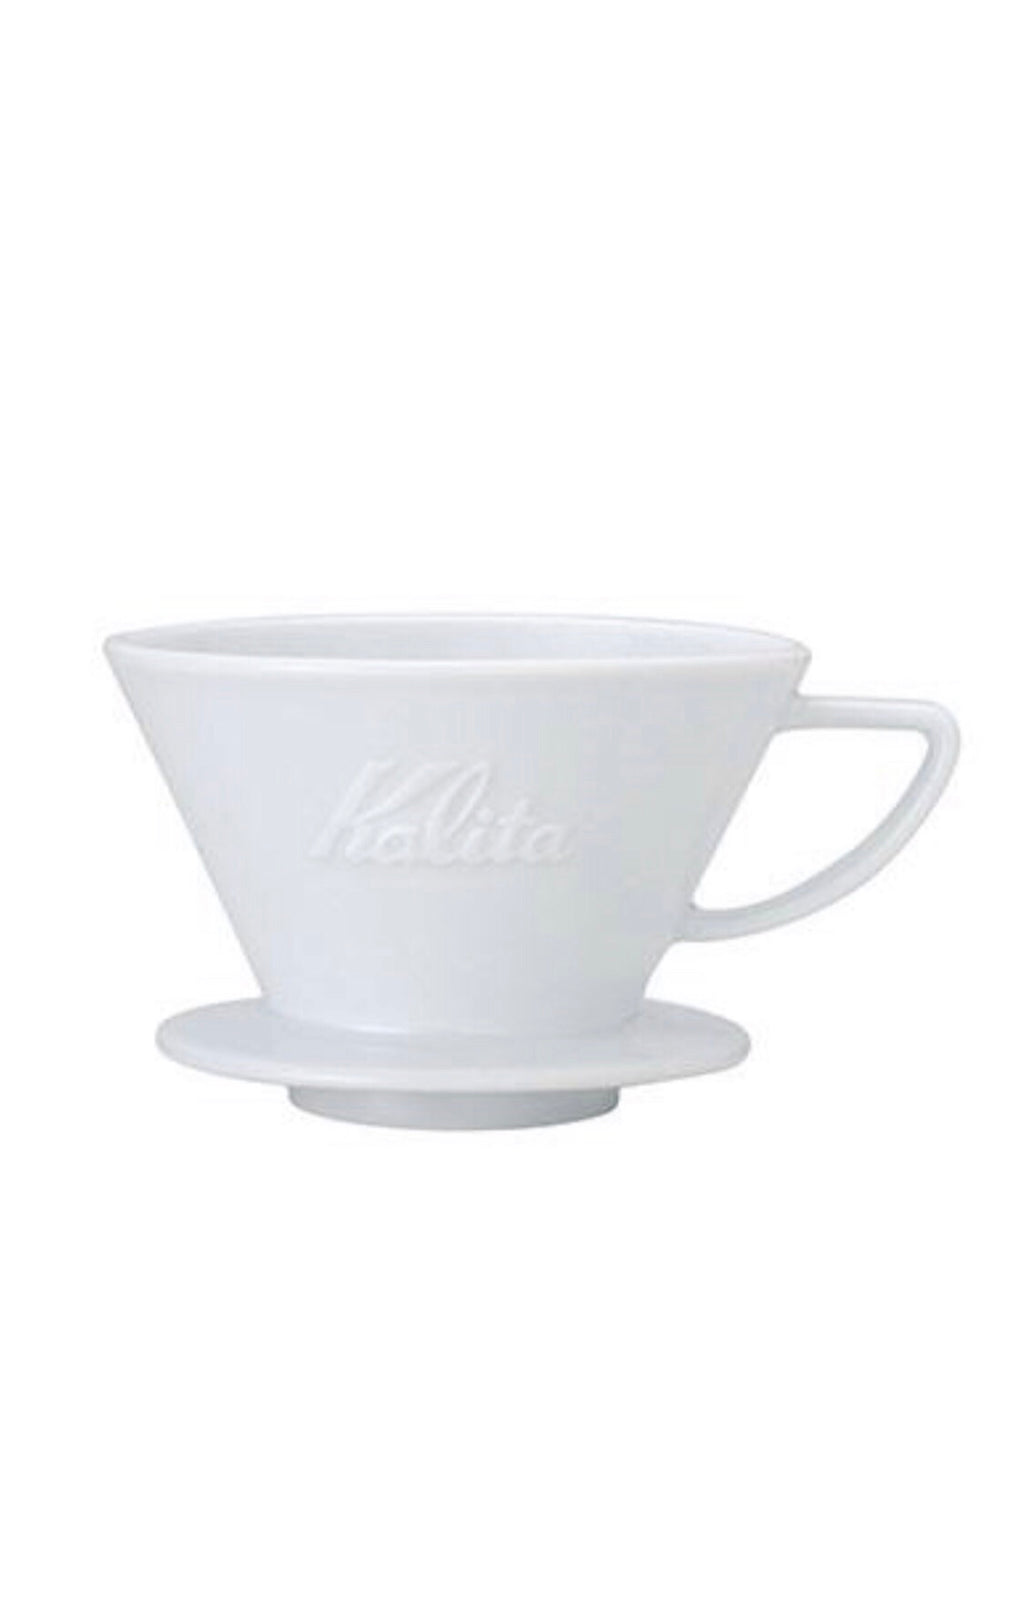 Kalita Wave 185 Ceramic Dripper